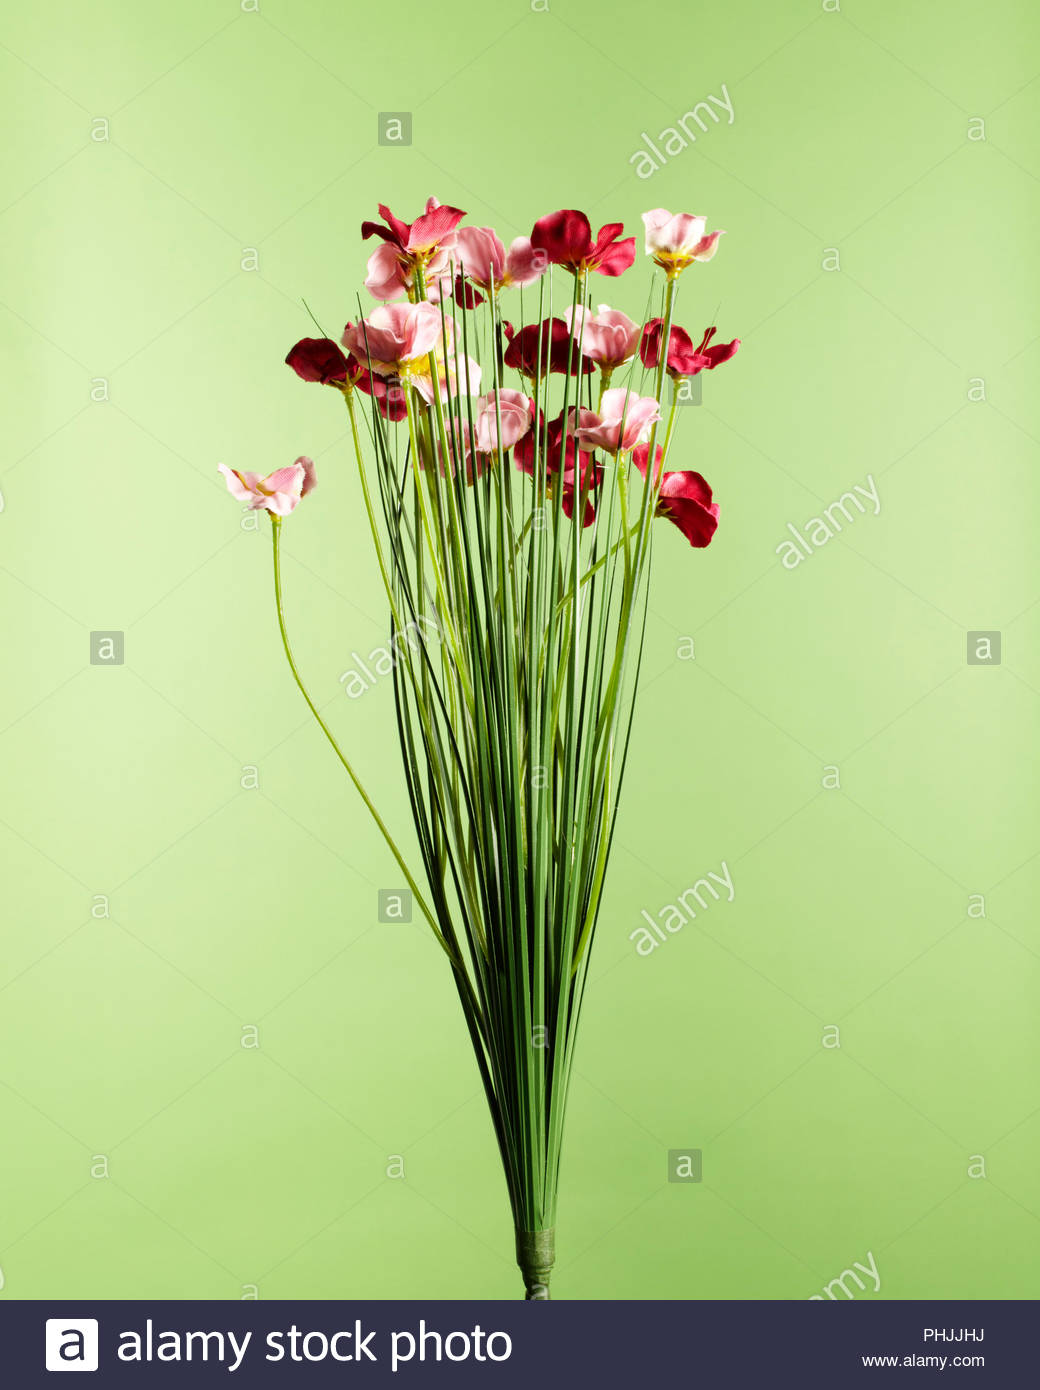 Pink and red flowers - Stock Image